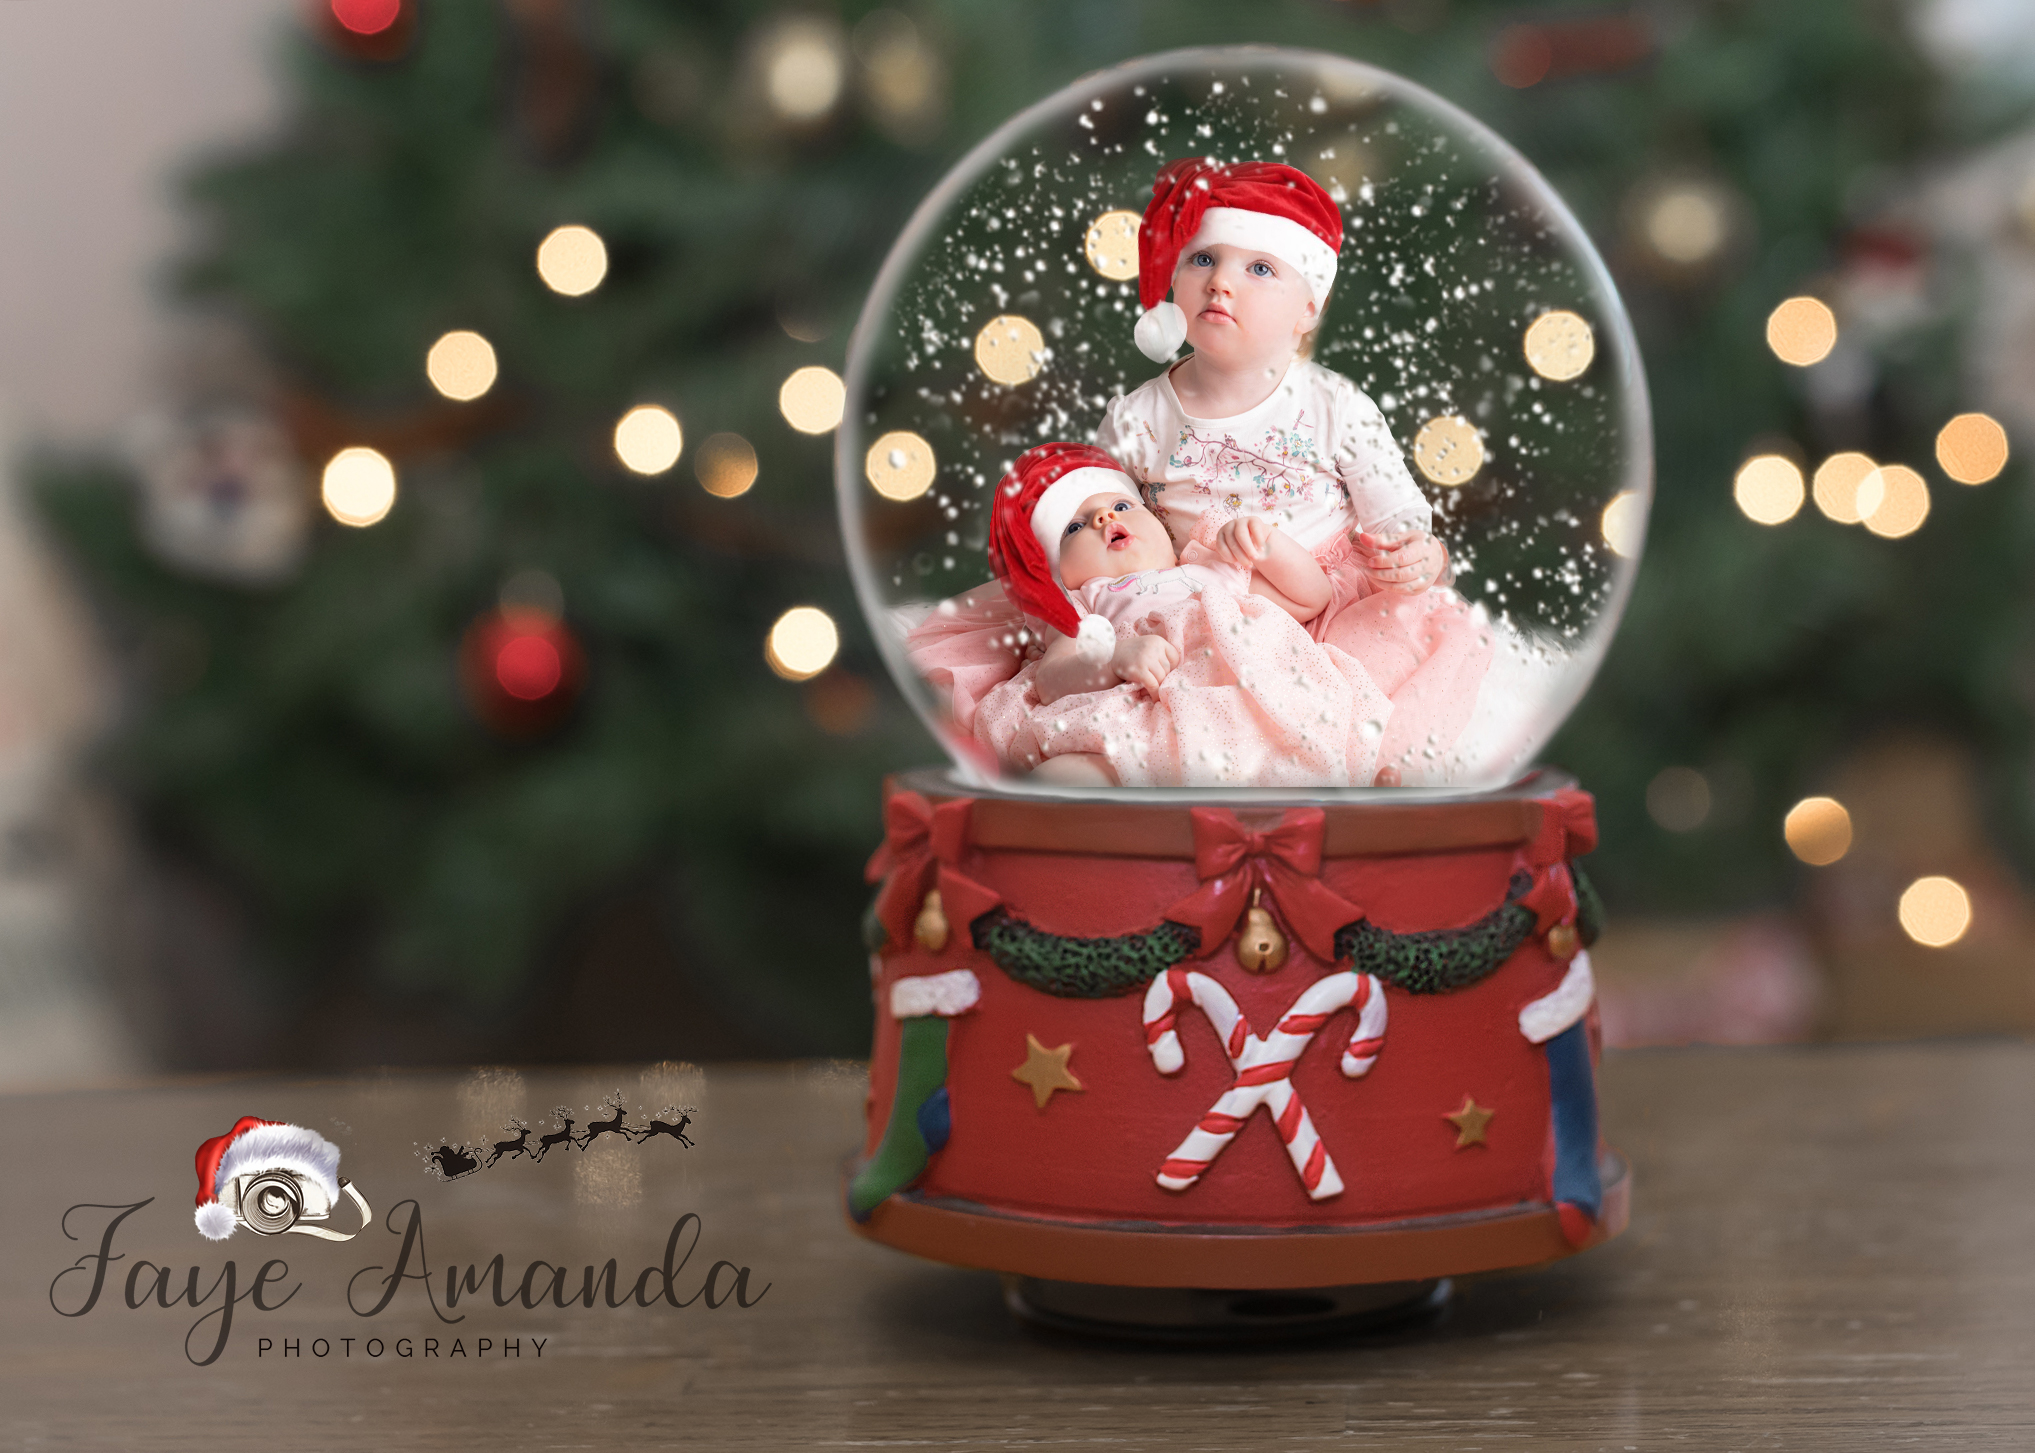 Snow Globe Christmas edit